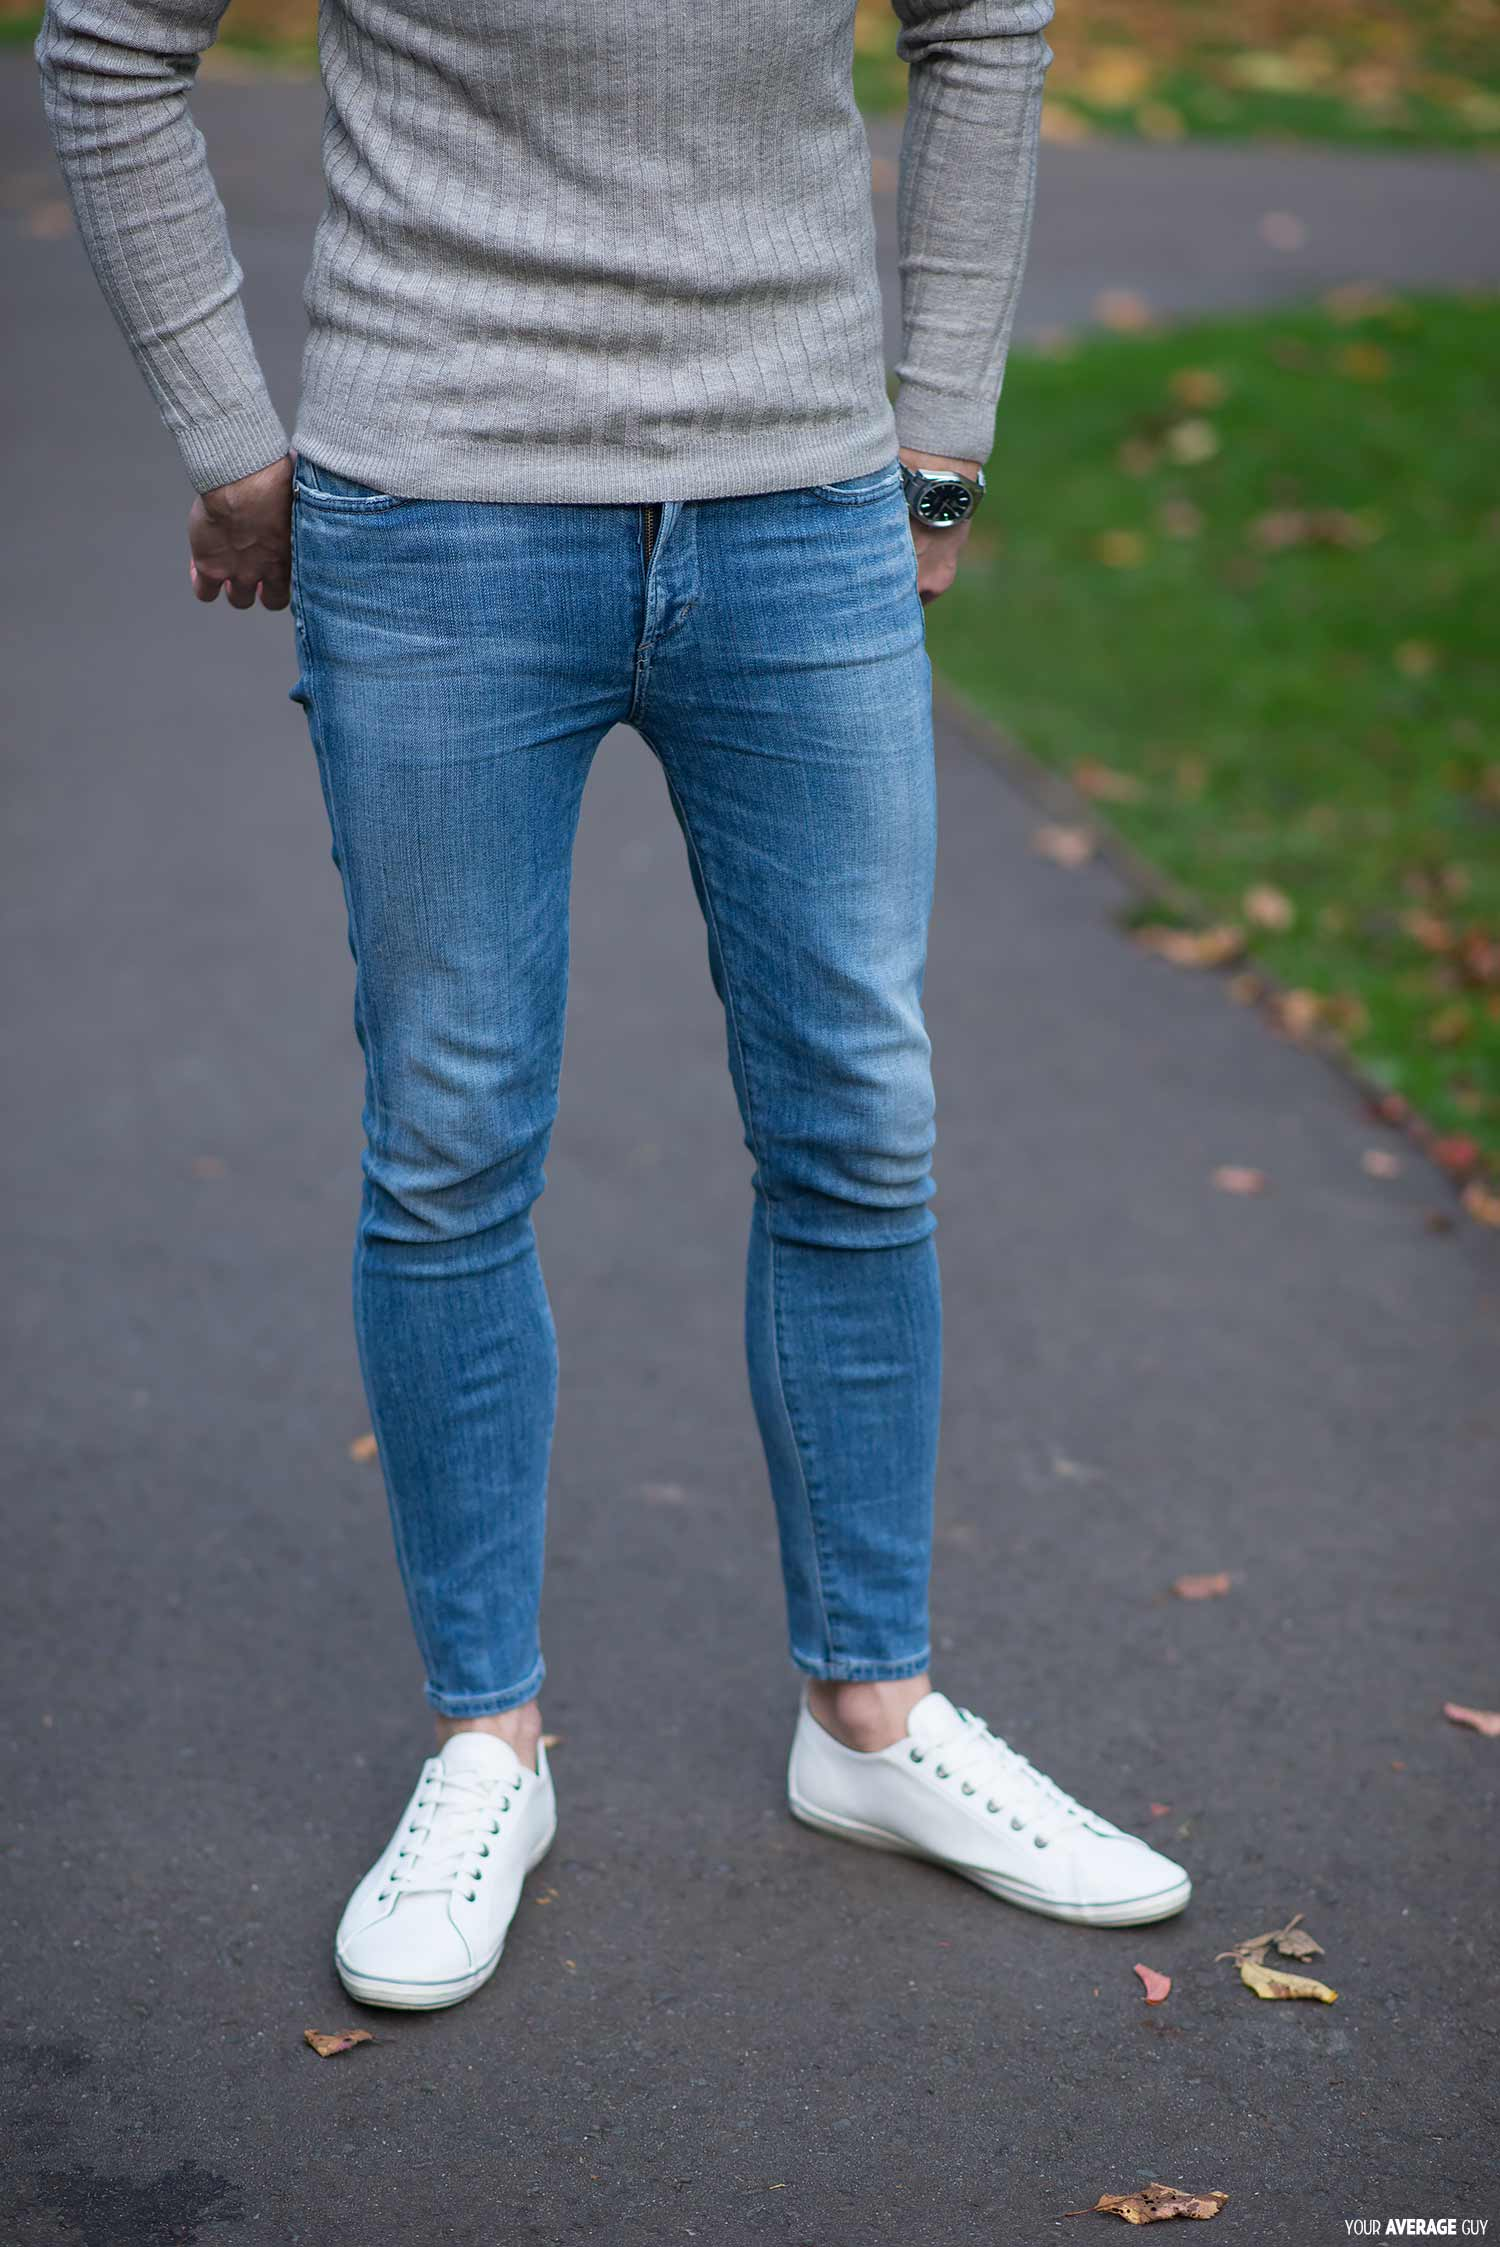 citizens-of-humanity-rocket-aura-jeans-on-man